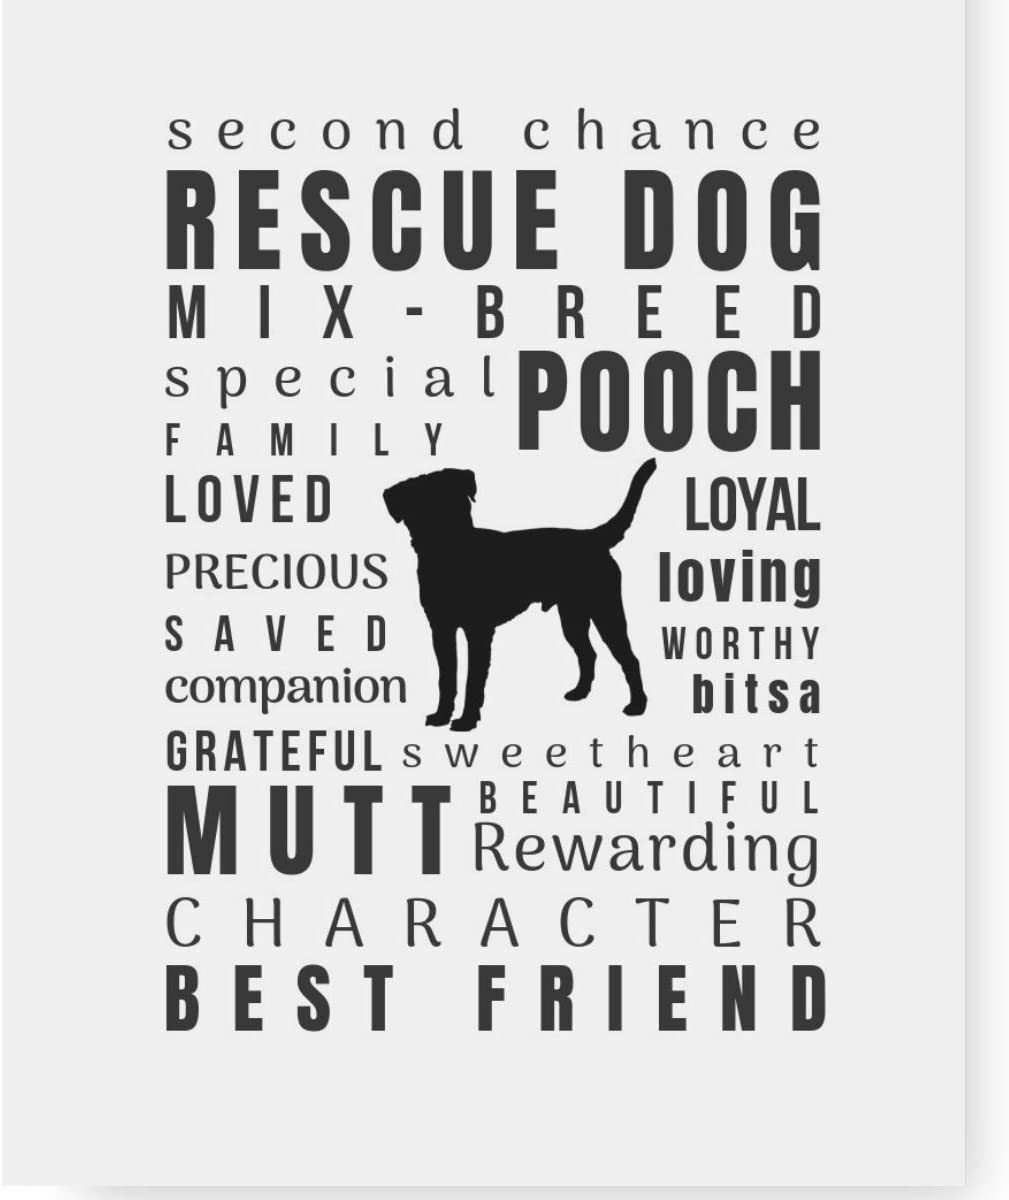 Dog Lover Gifts Art Quote Print 'Pet Personality' Home Decor - Various Breeds Unframed (8.5x11, Rescue Dog)